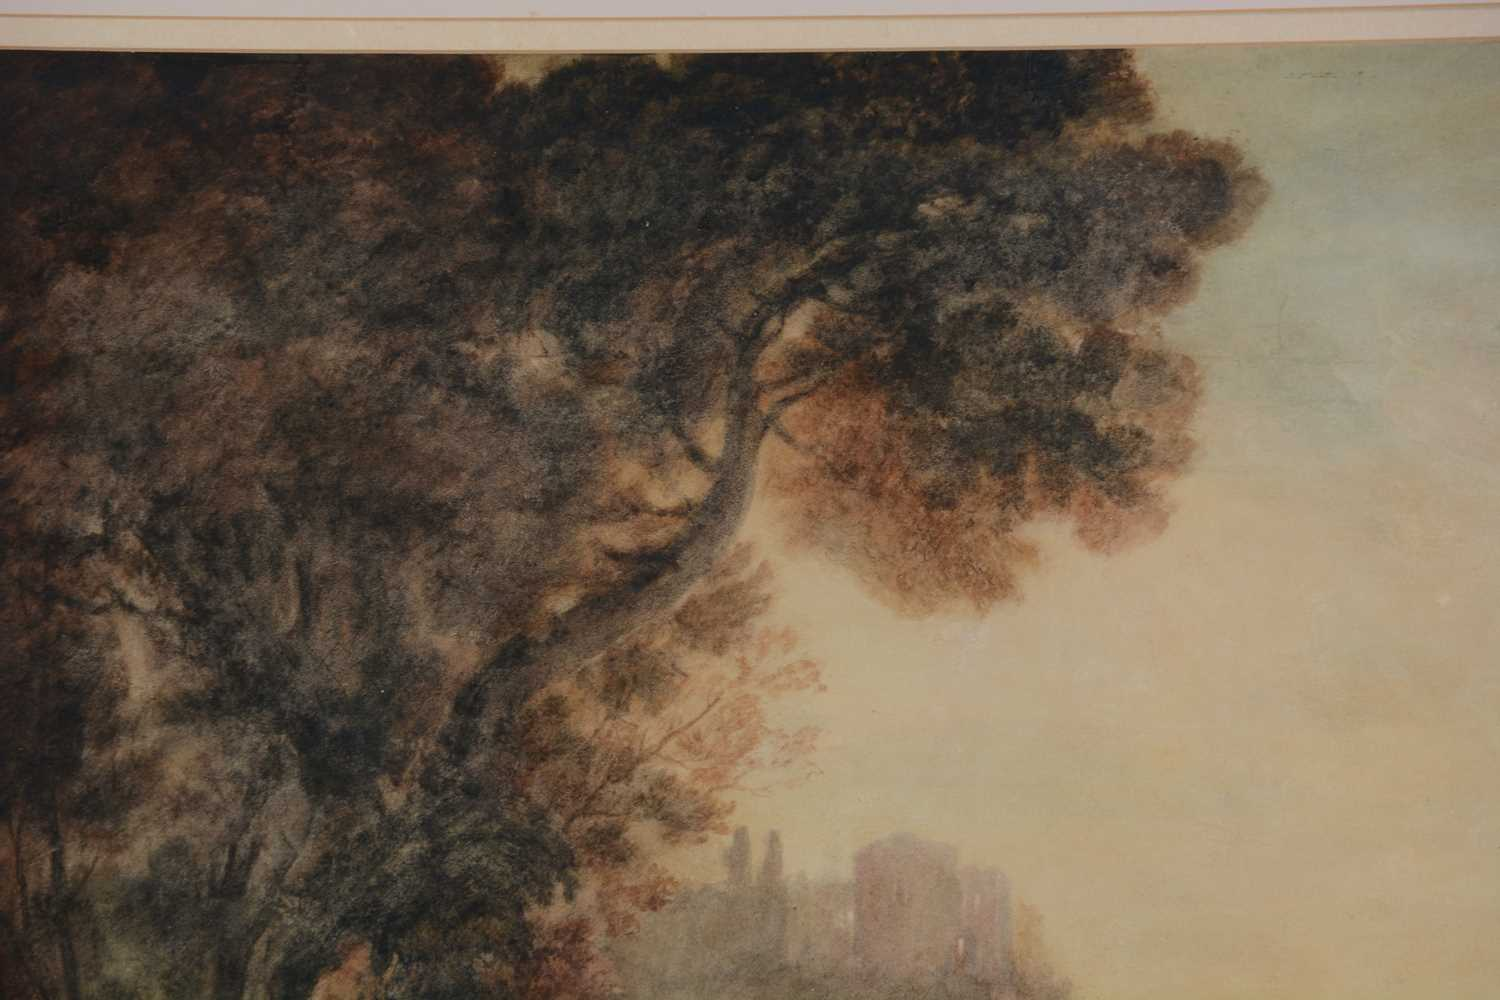 Attributed to Joseph Mallord William Turner, RA - watercolour - Image 6 of 11